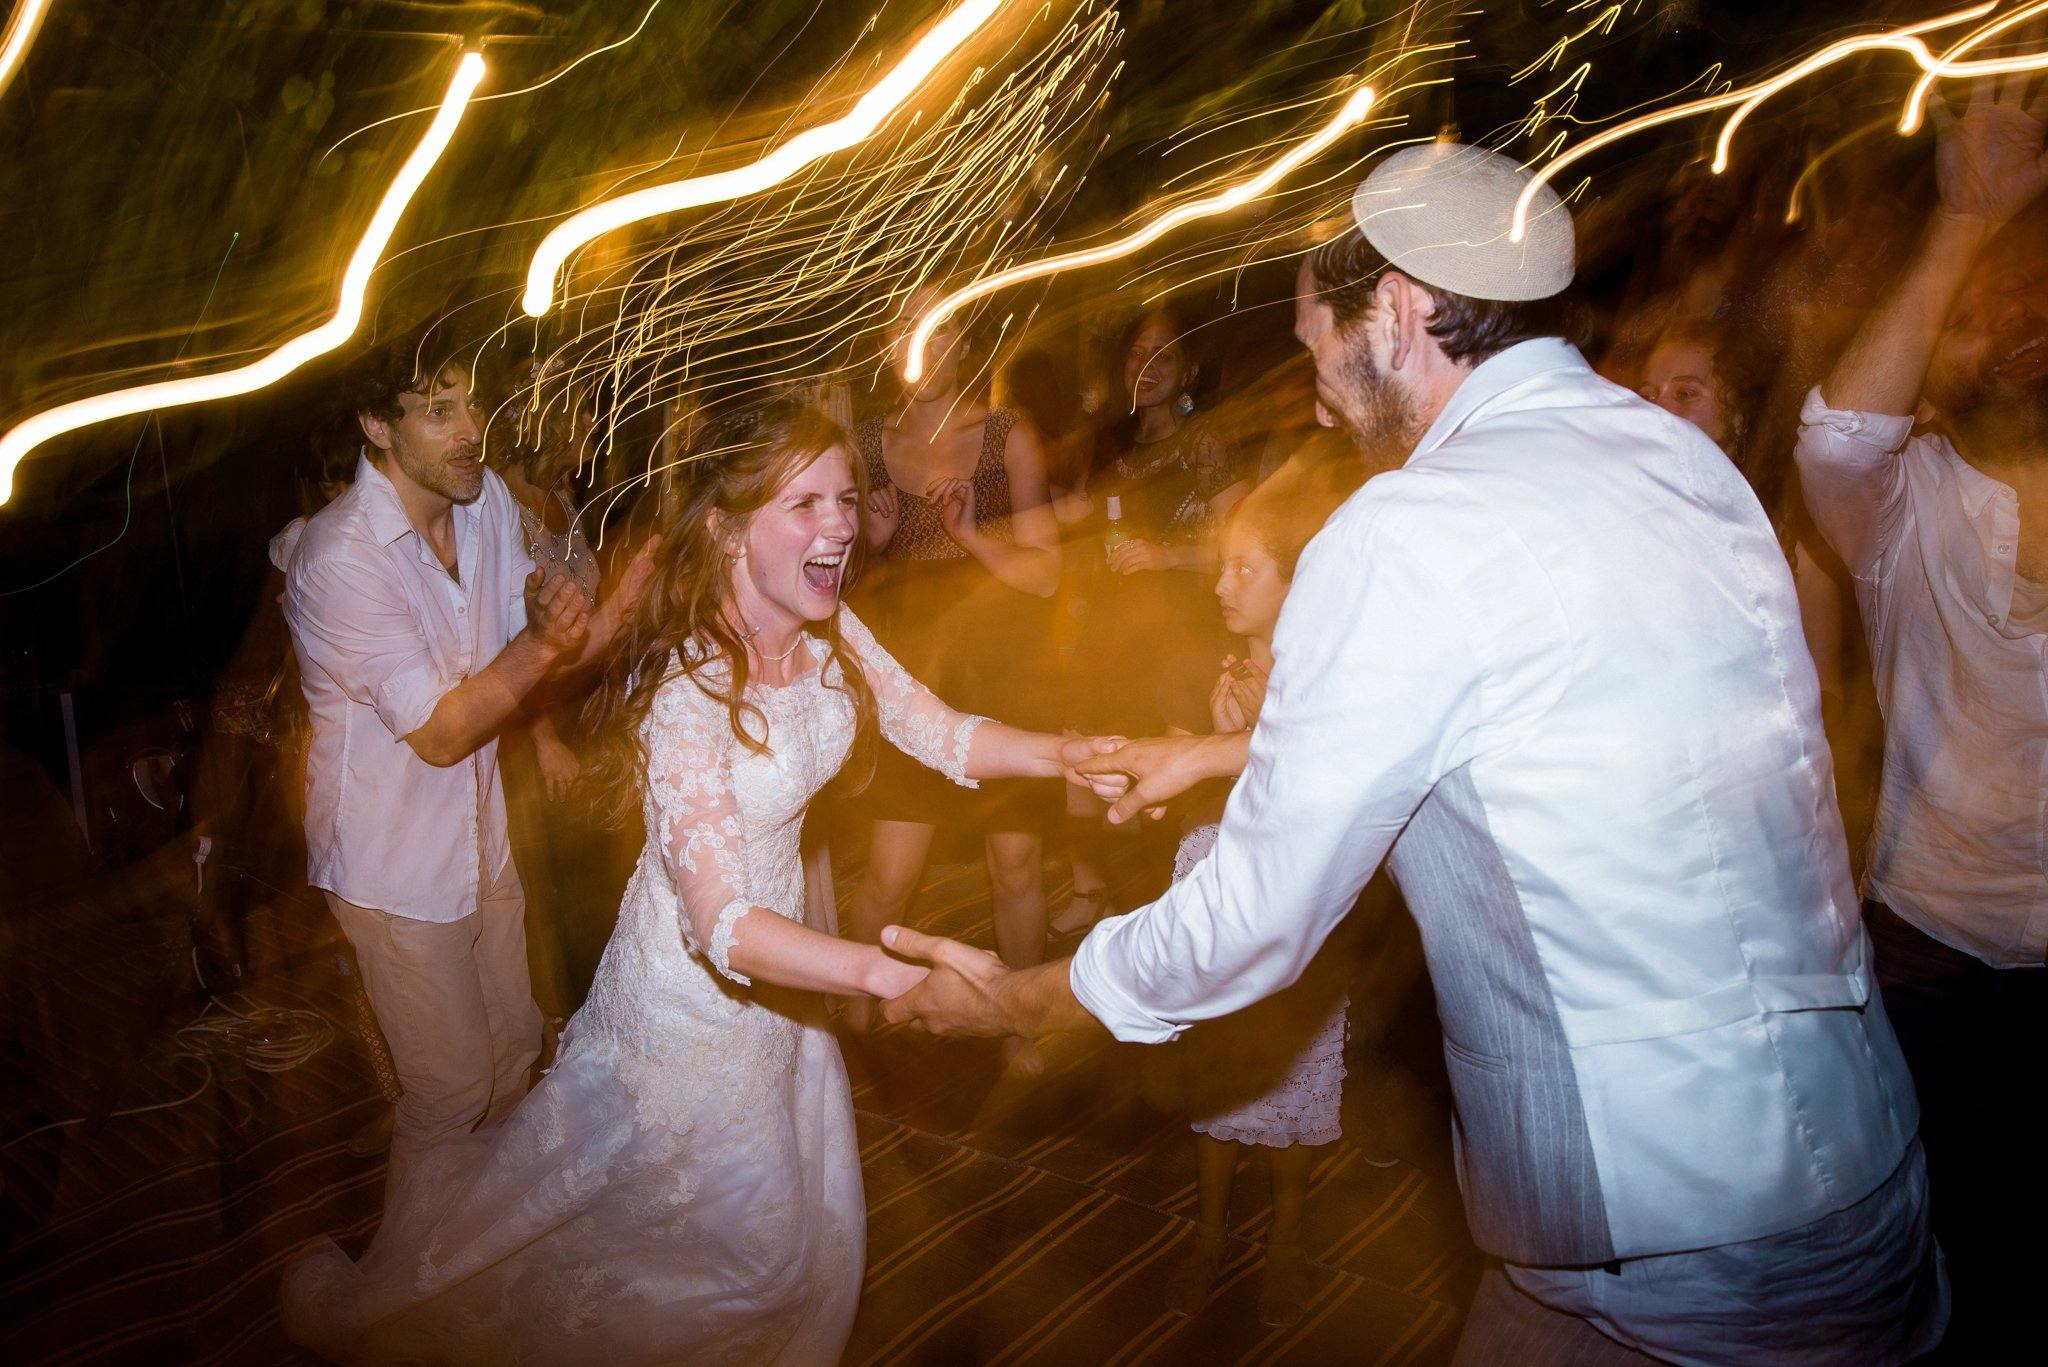 jewish-wedding-binyamina-israel-kate-giryes-photography-271_WEB.jpg